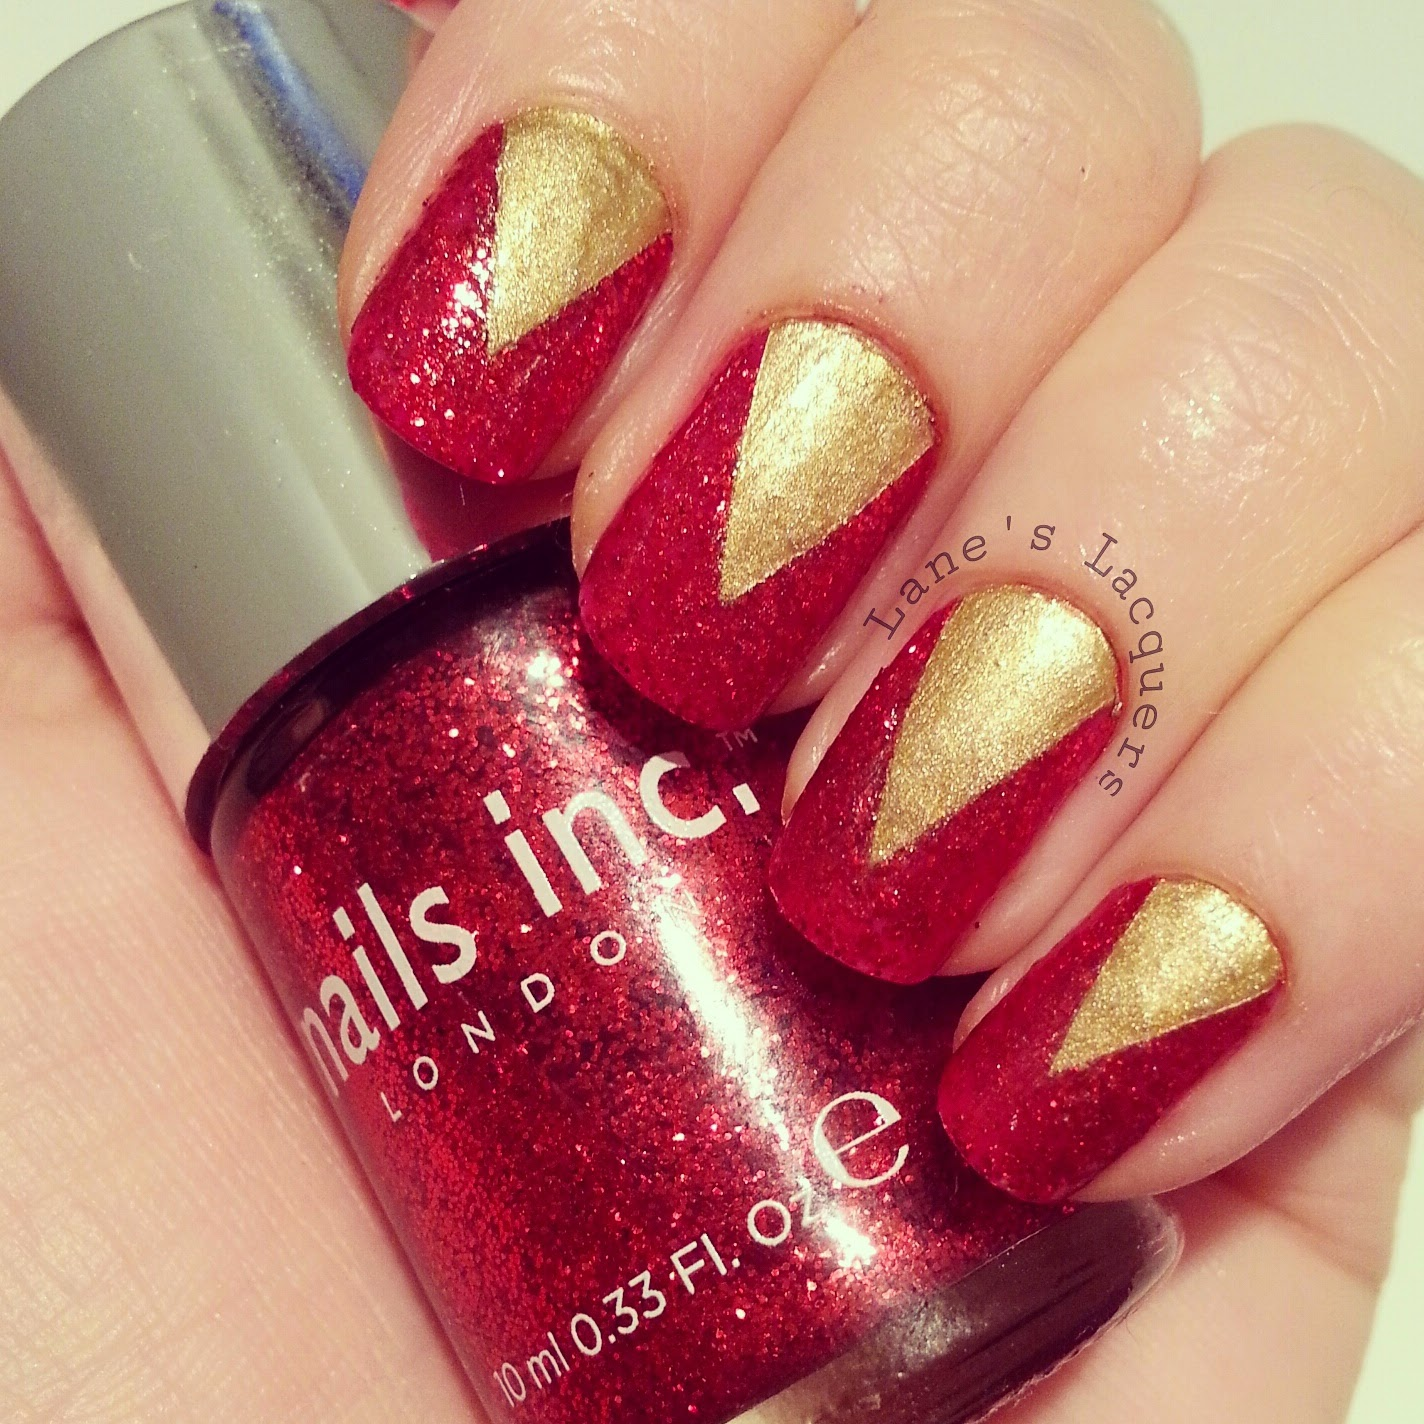 52wpnmc-nails-inc-red-glitter-gold-chevron-nail-art (2)